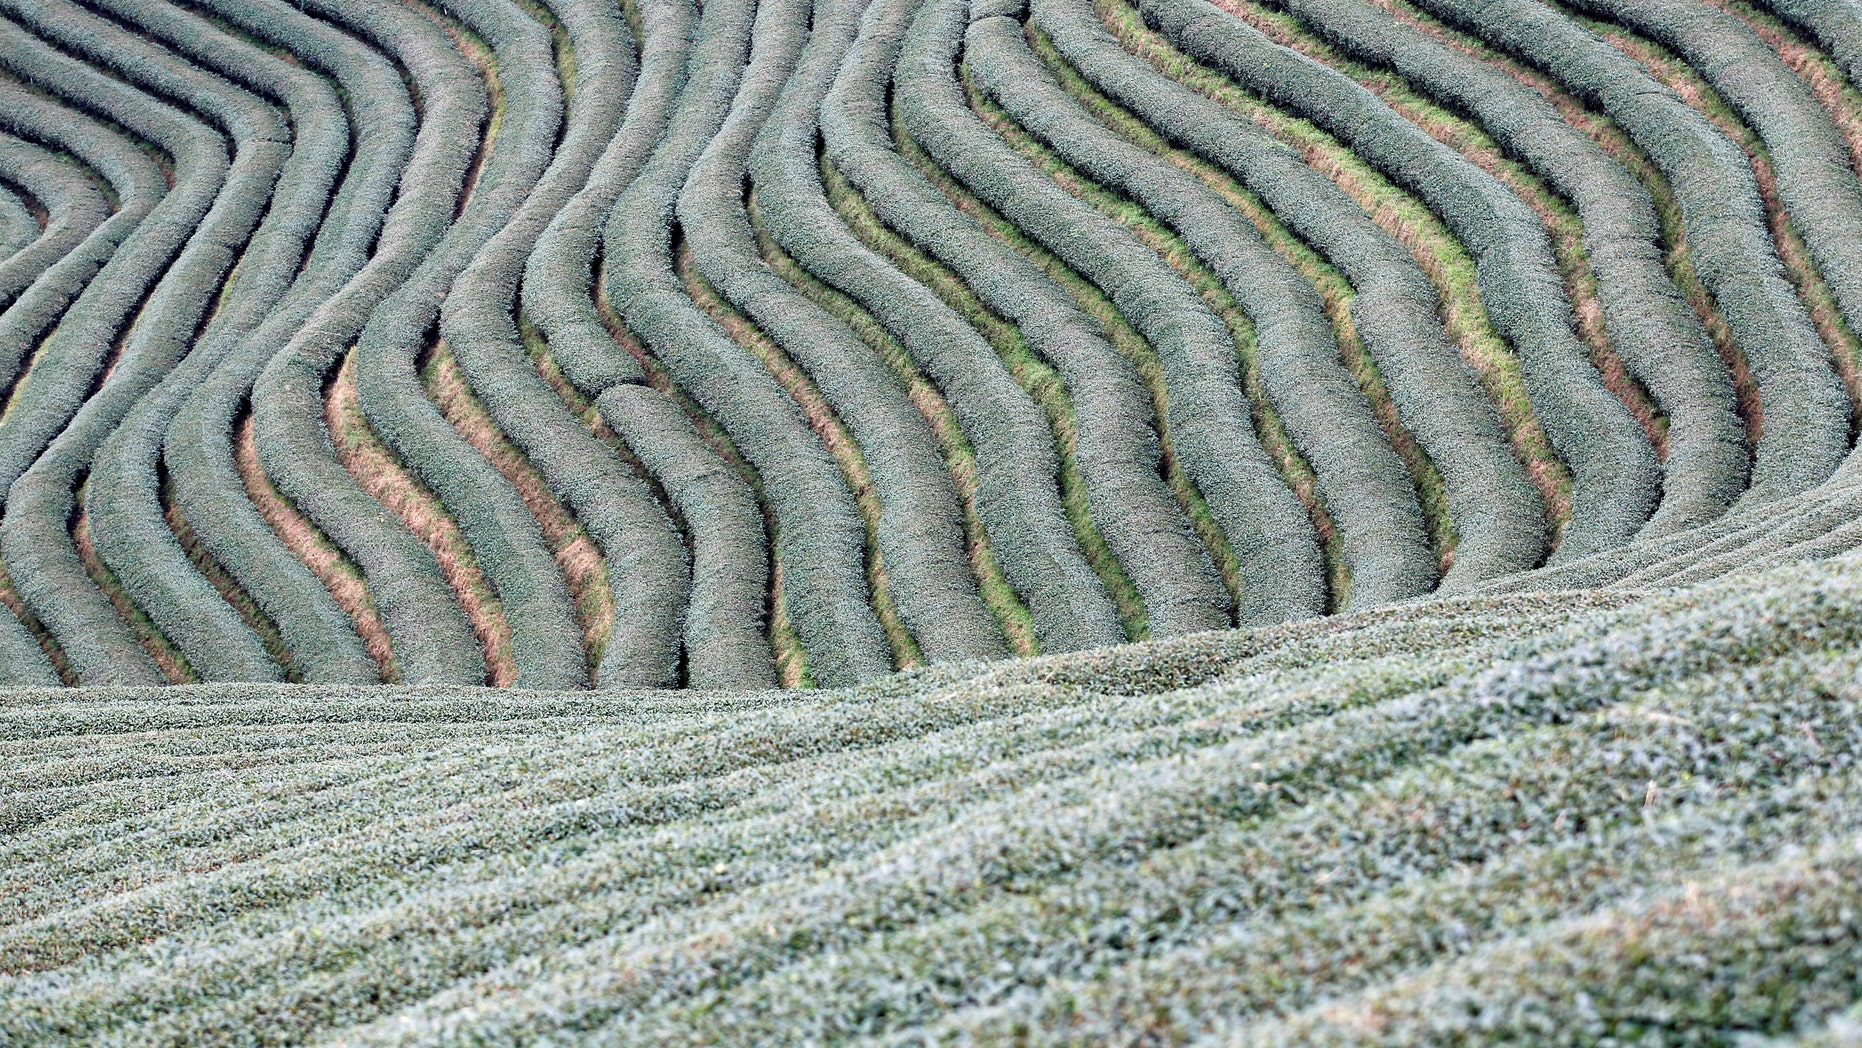 Workers work in tea leaf field at Mong Mao in ethnic Wa territory in north east Myanmar October 1, 2016. Picture taken on October 1, 2016. (REUTERS/Soe Zeya Tun)